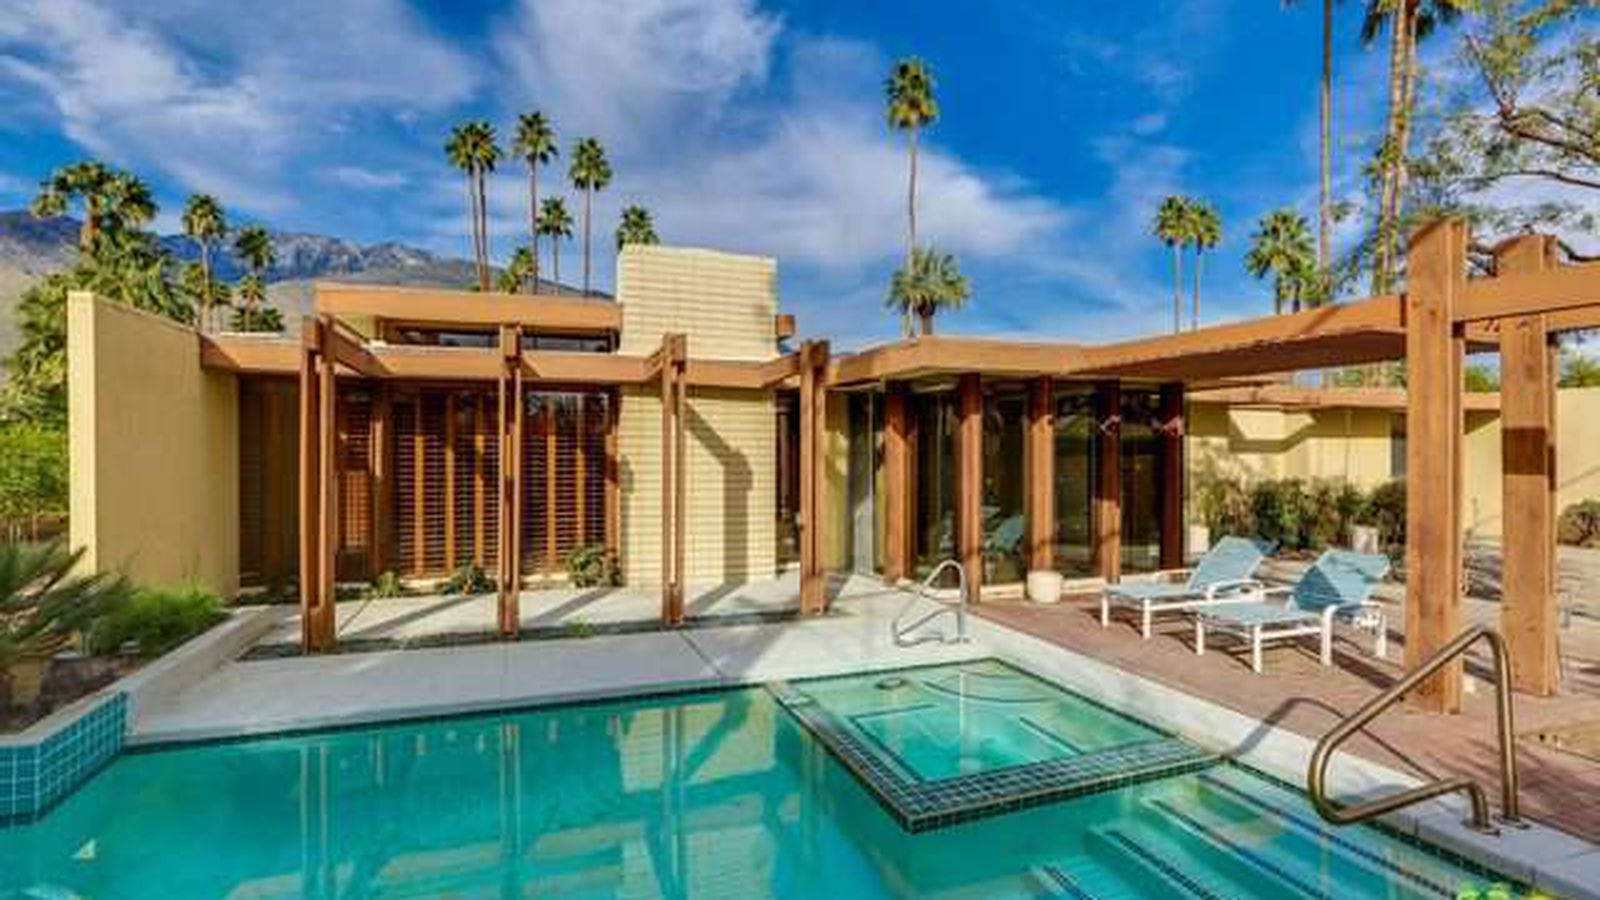 Palm springs midcentury post and beam with pool asks 800k for Palm springs for sale by owner